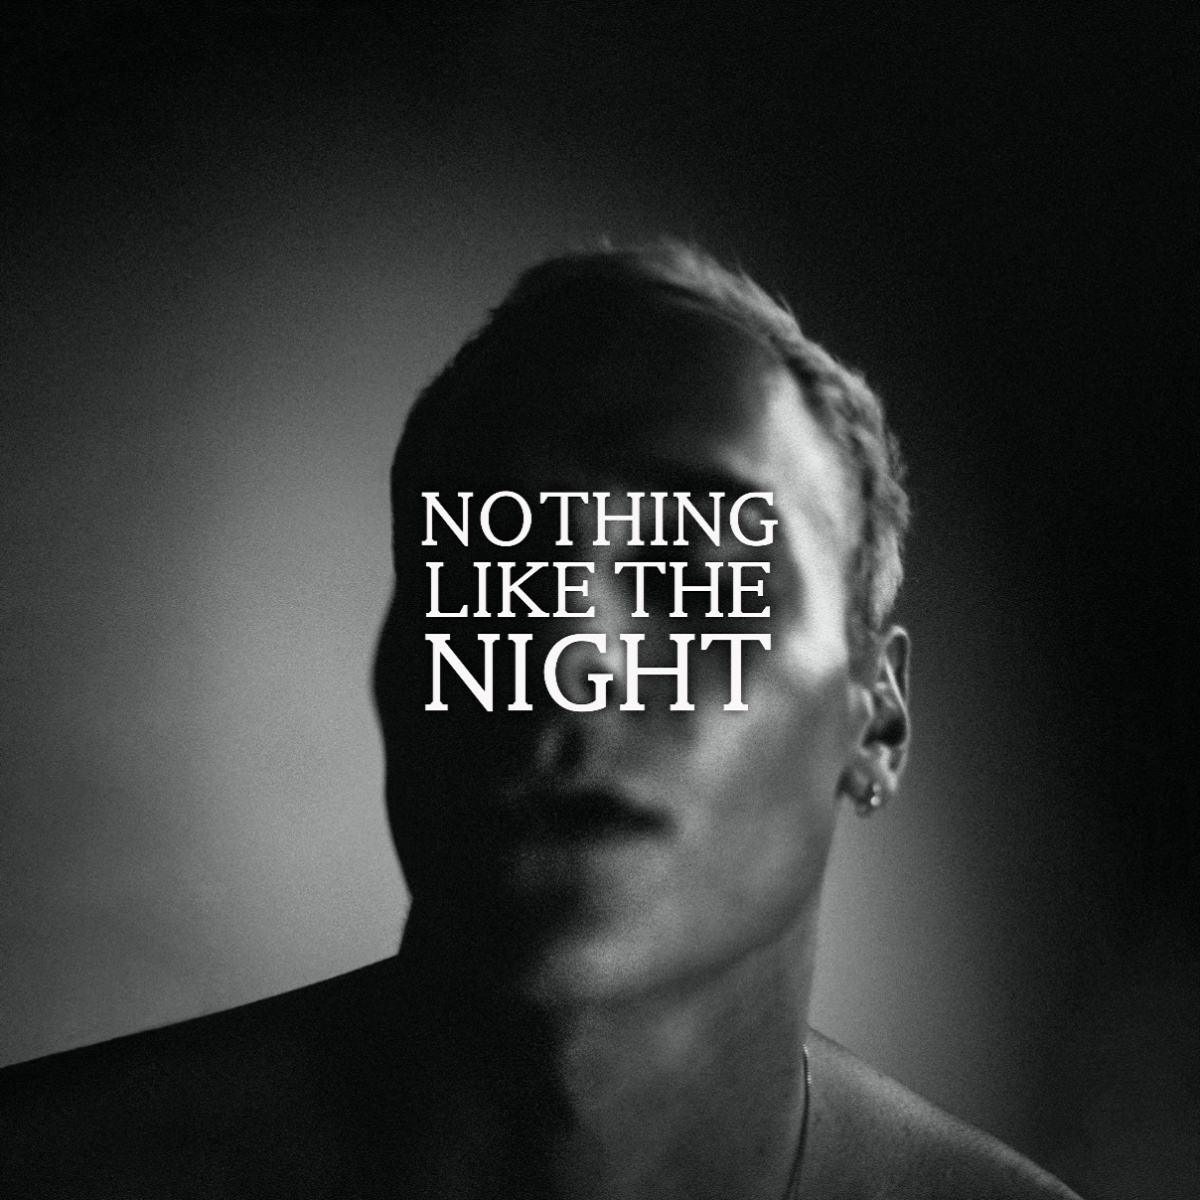 Nothing Like the Night Artwork via Stefan Tshumi for Big Hassle Media for use by 360 Magazine